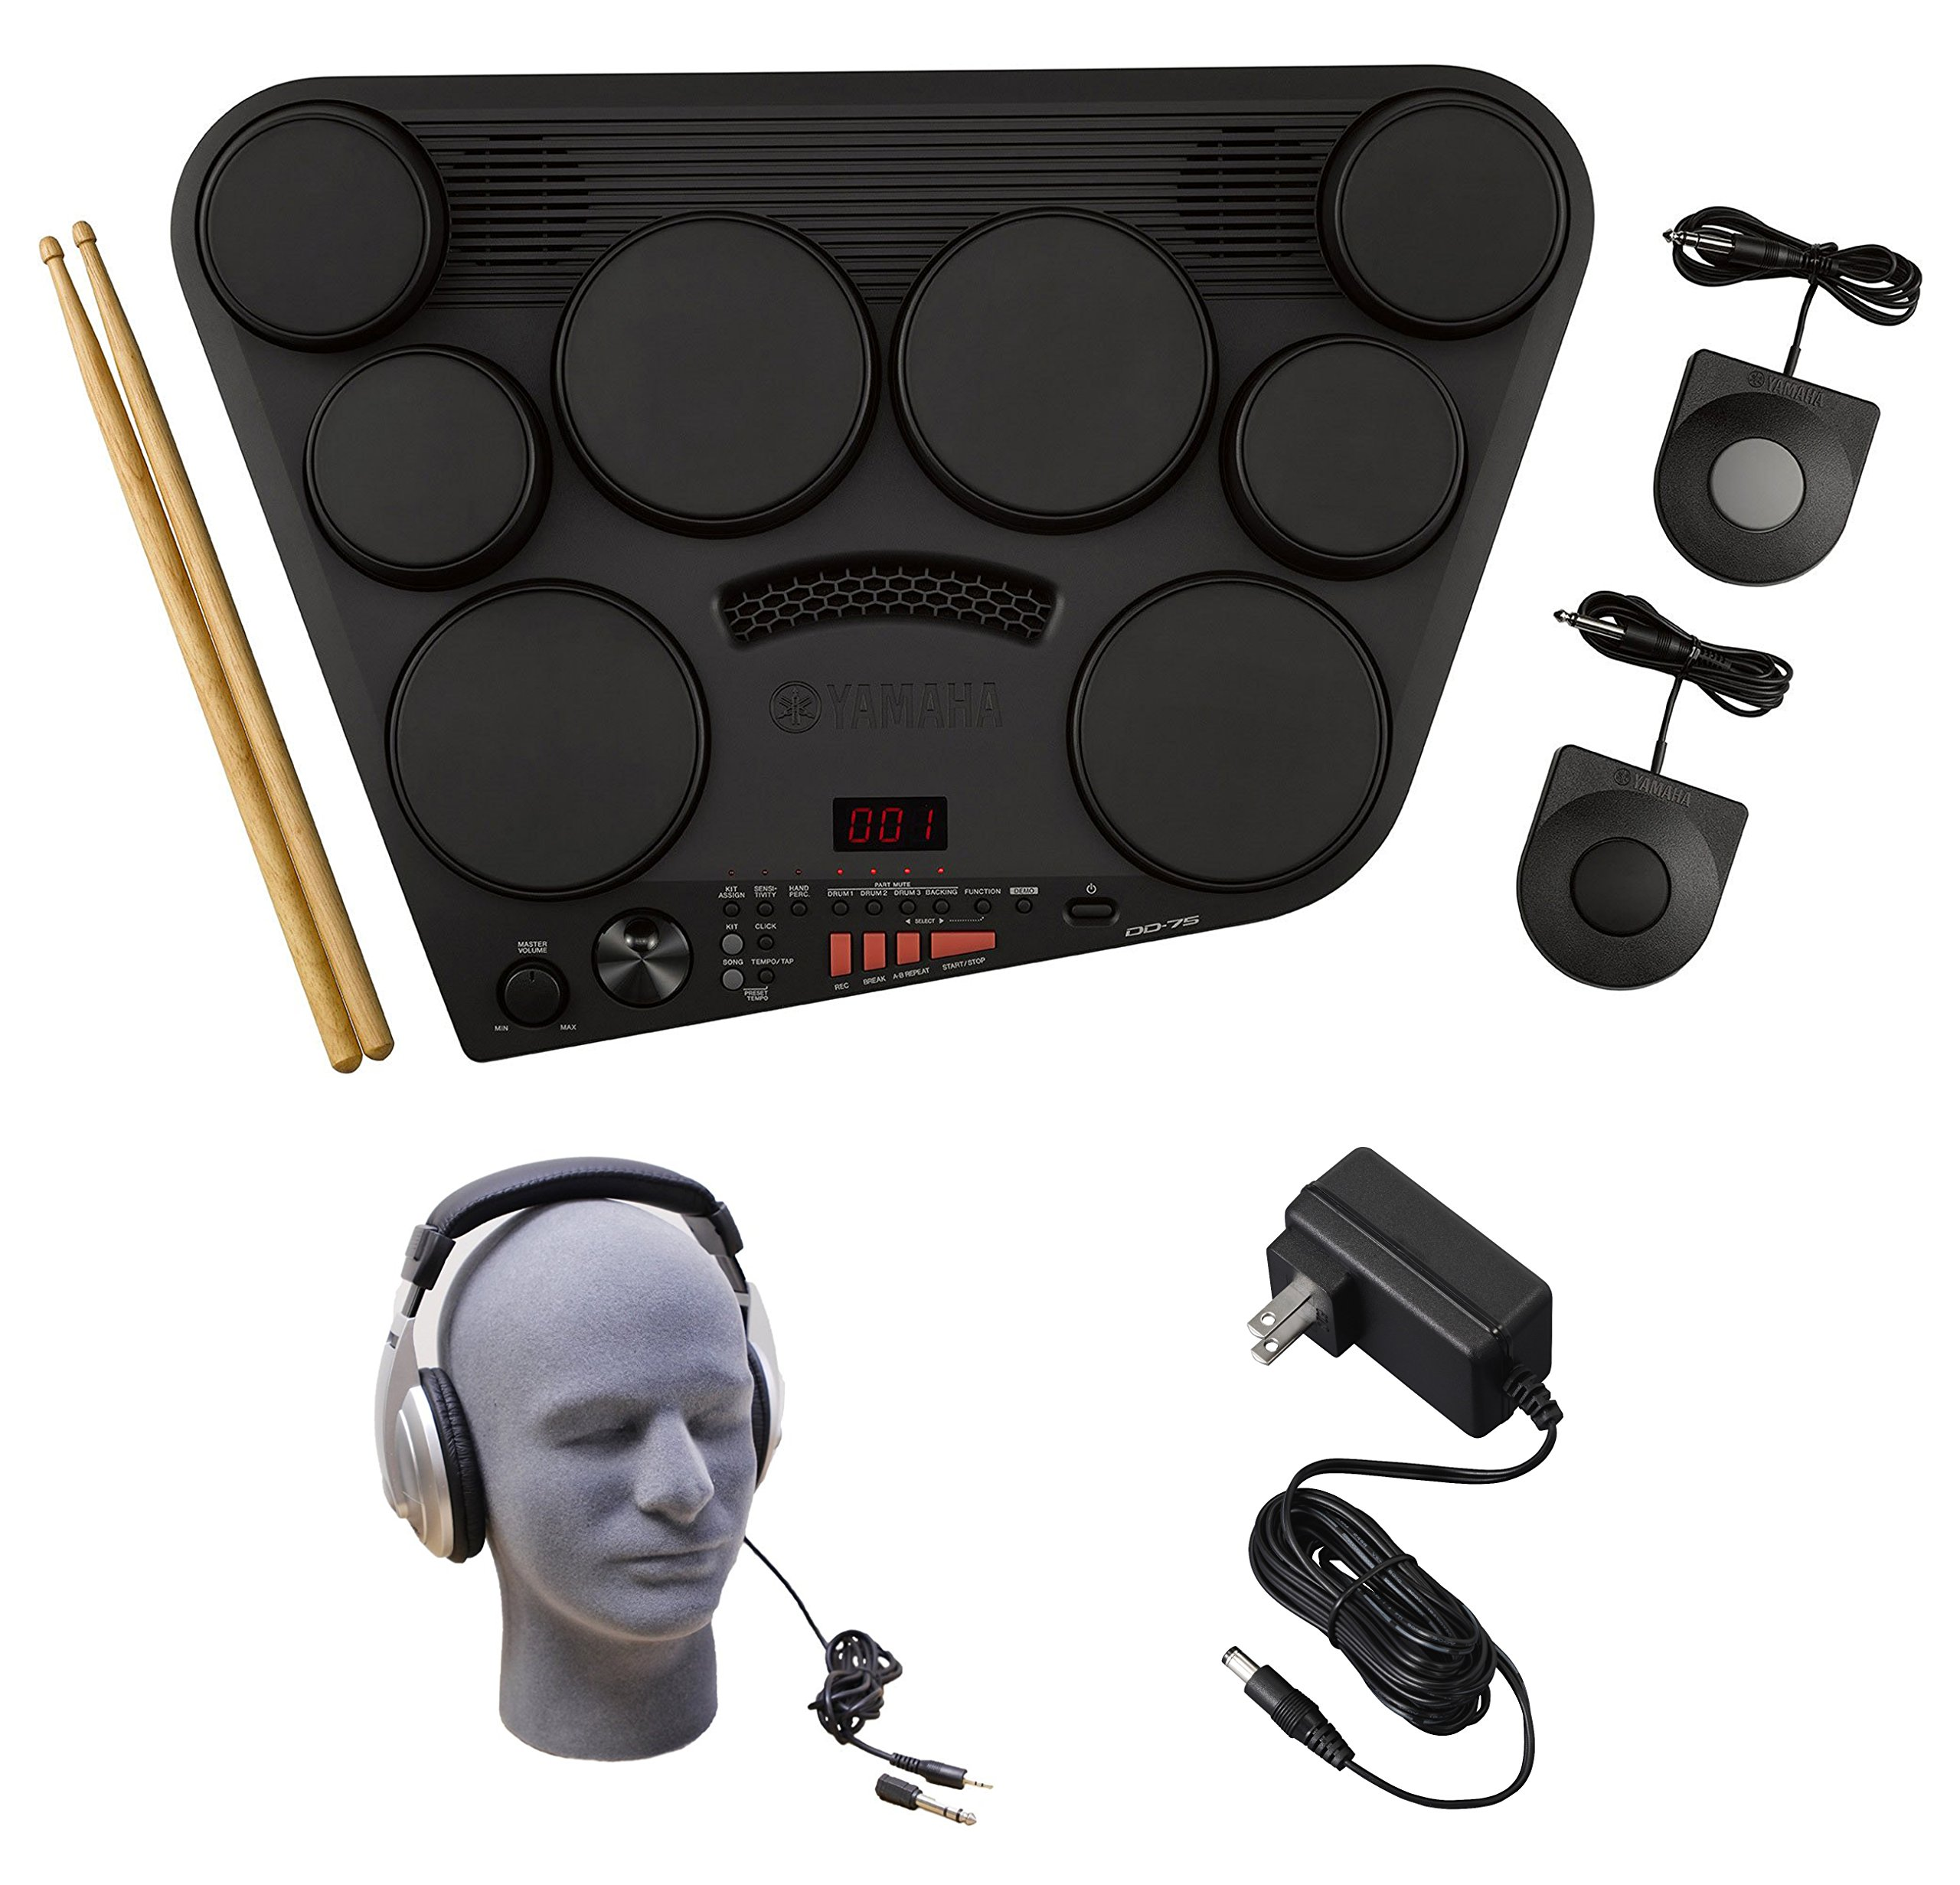 Yamaha DD-75 Portable Digital Drums Package with Headphones & Power Supply by YAMAHA